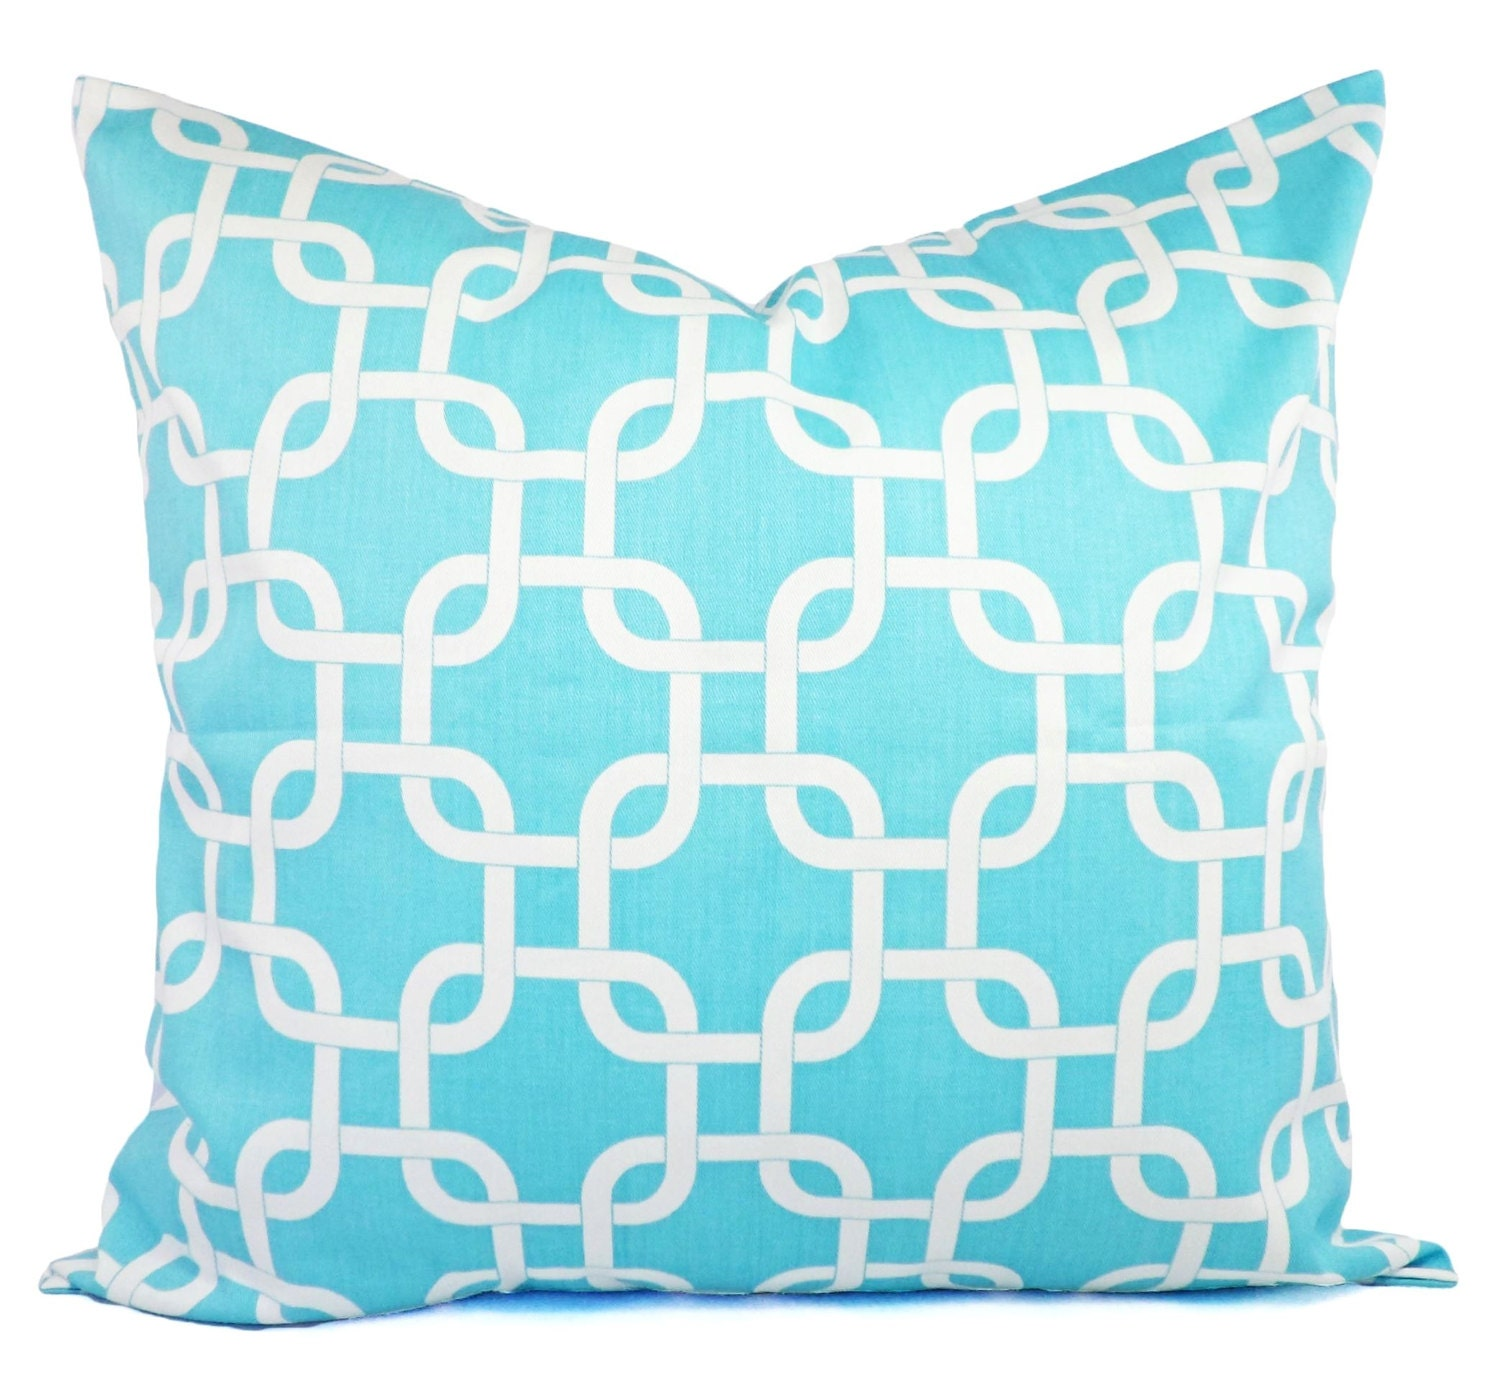 Throw Pillow Covers Teal : Two Decorative Throw Pillow Covers in Teal by CastawayCoveDecor